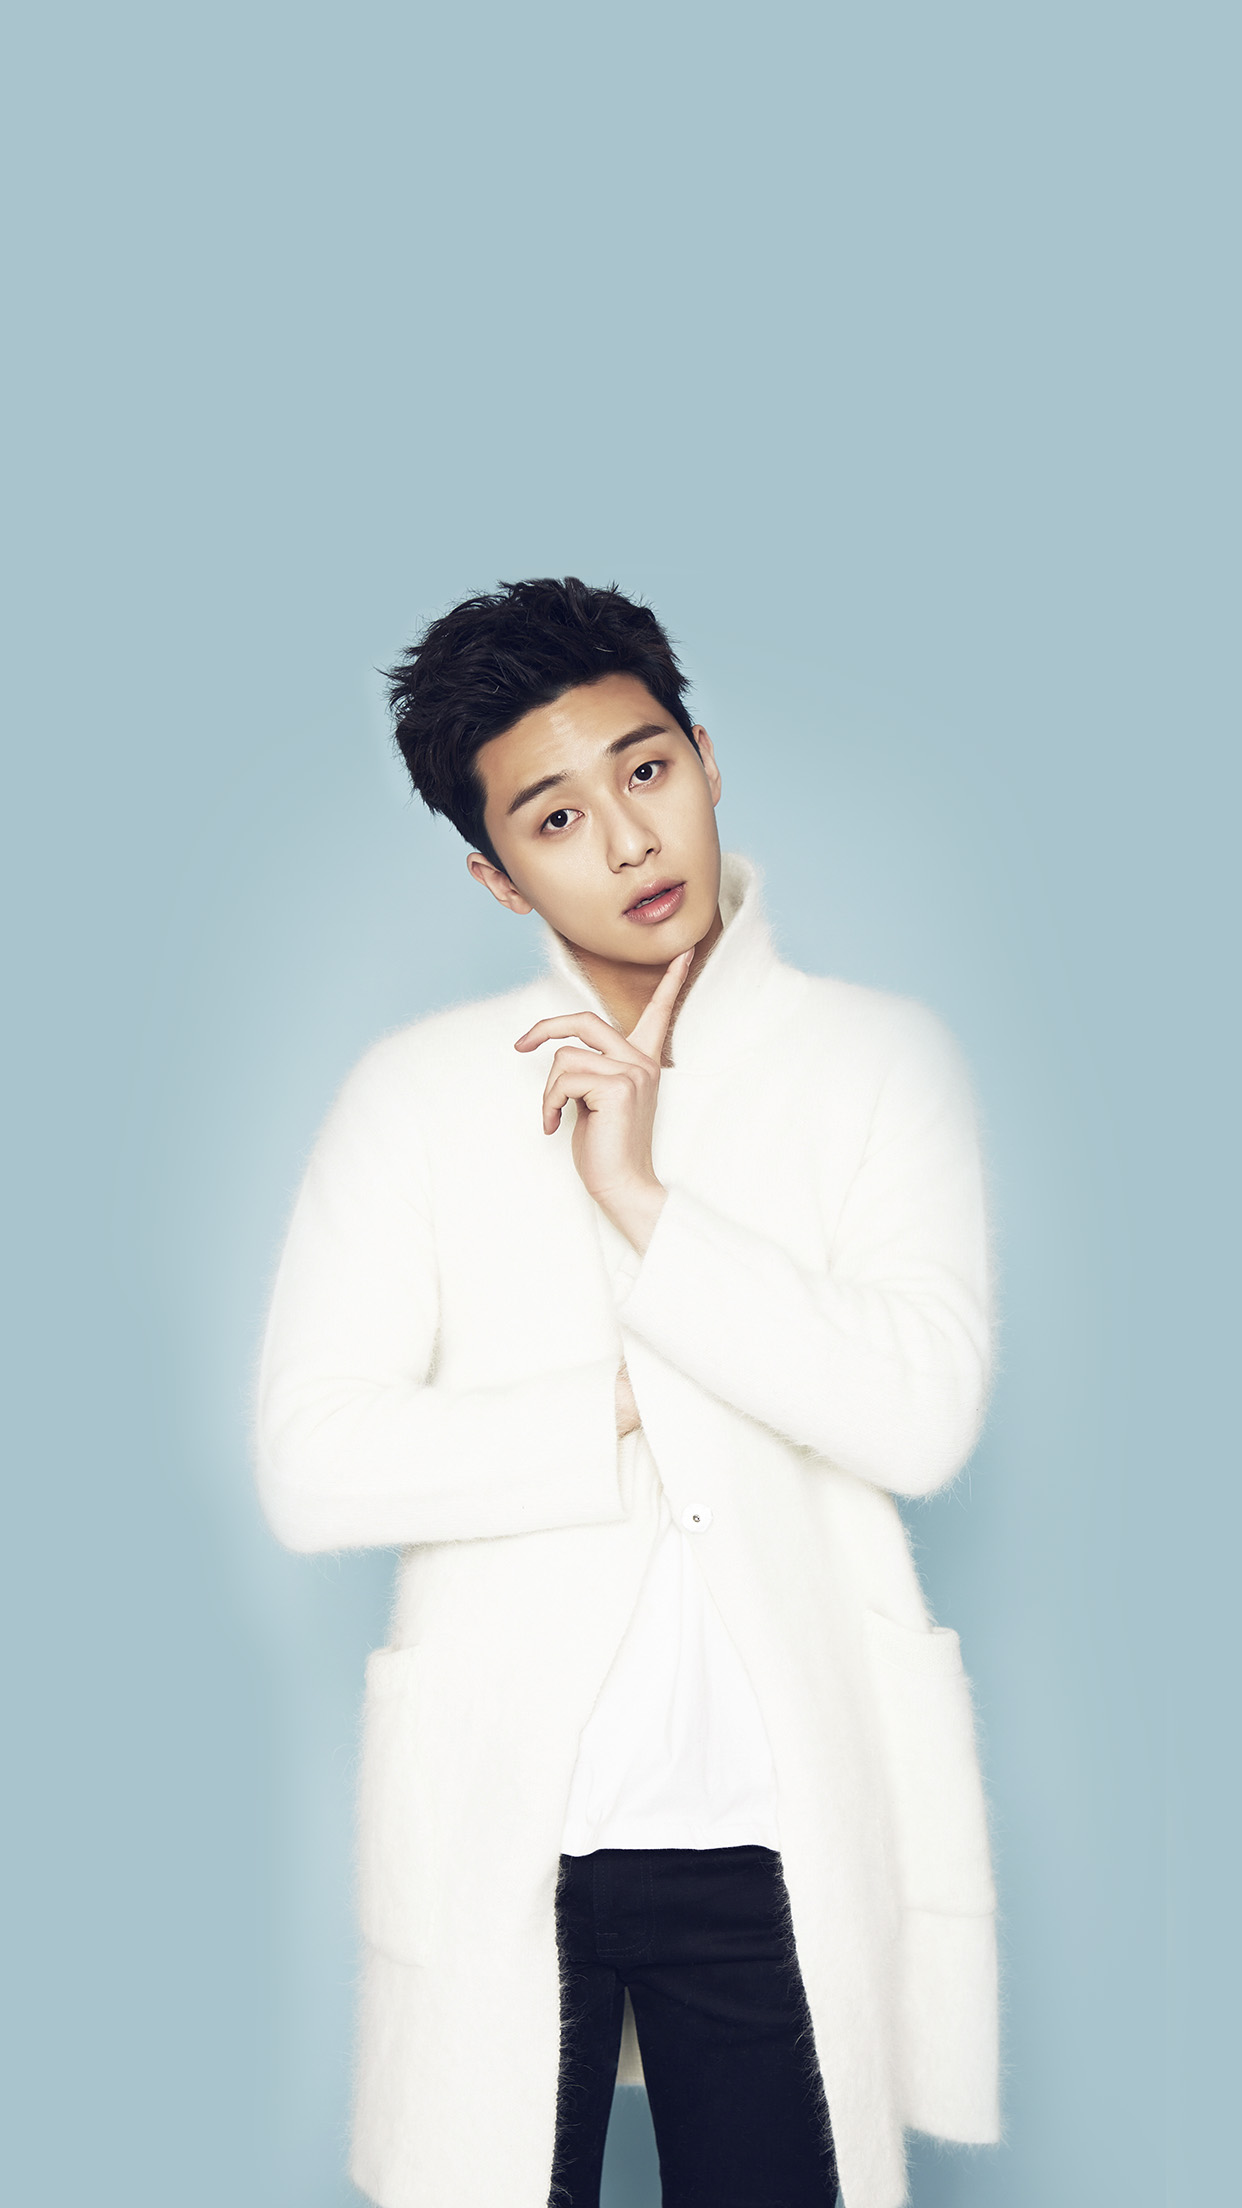 Park Seo Joon Kpop Blue Handsome Cool Guy Android wallpaper